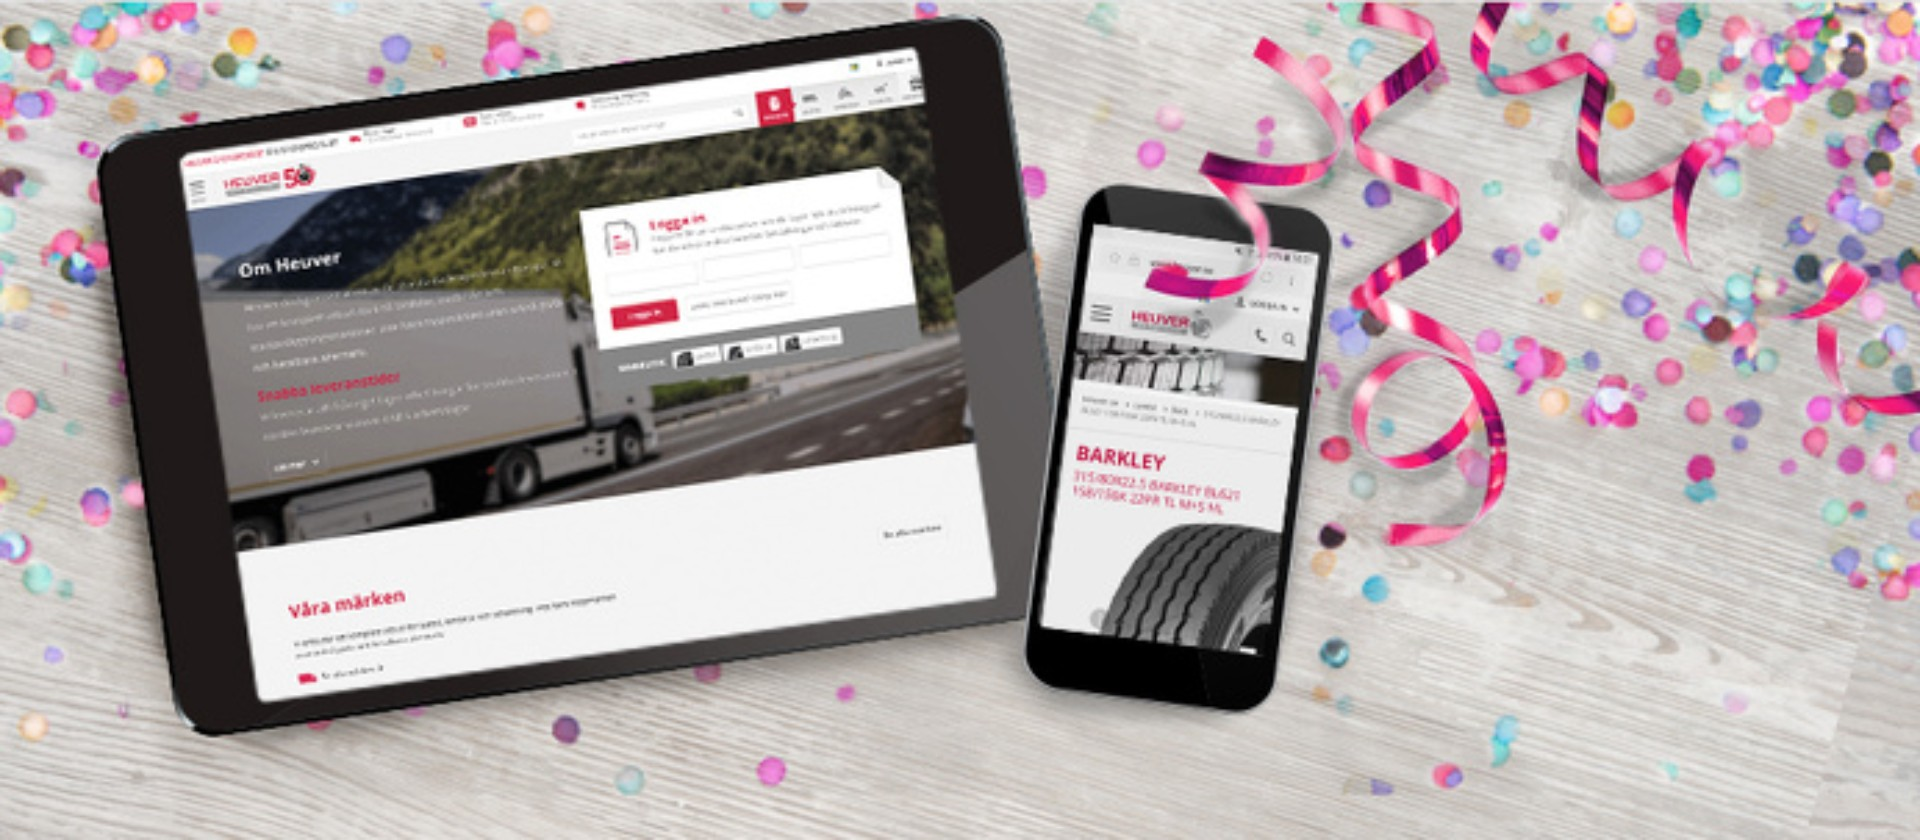 Heuver Tyrewholesale proud to launch Swedish web-shop; its 10th online outlet